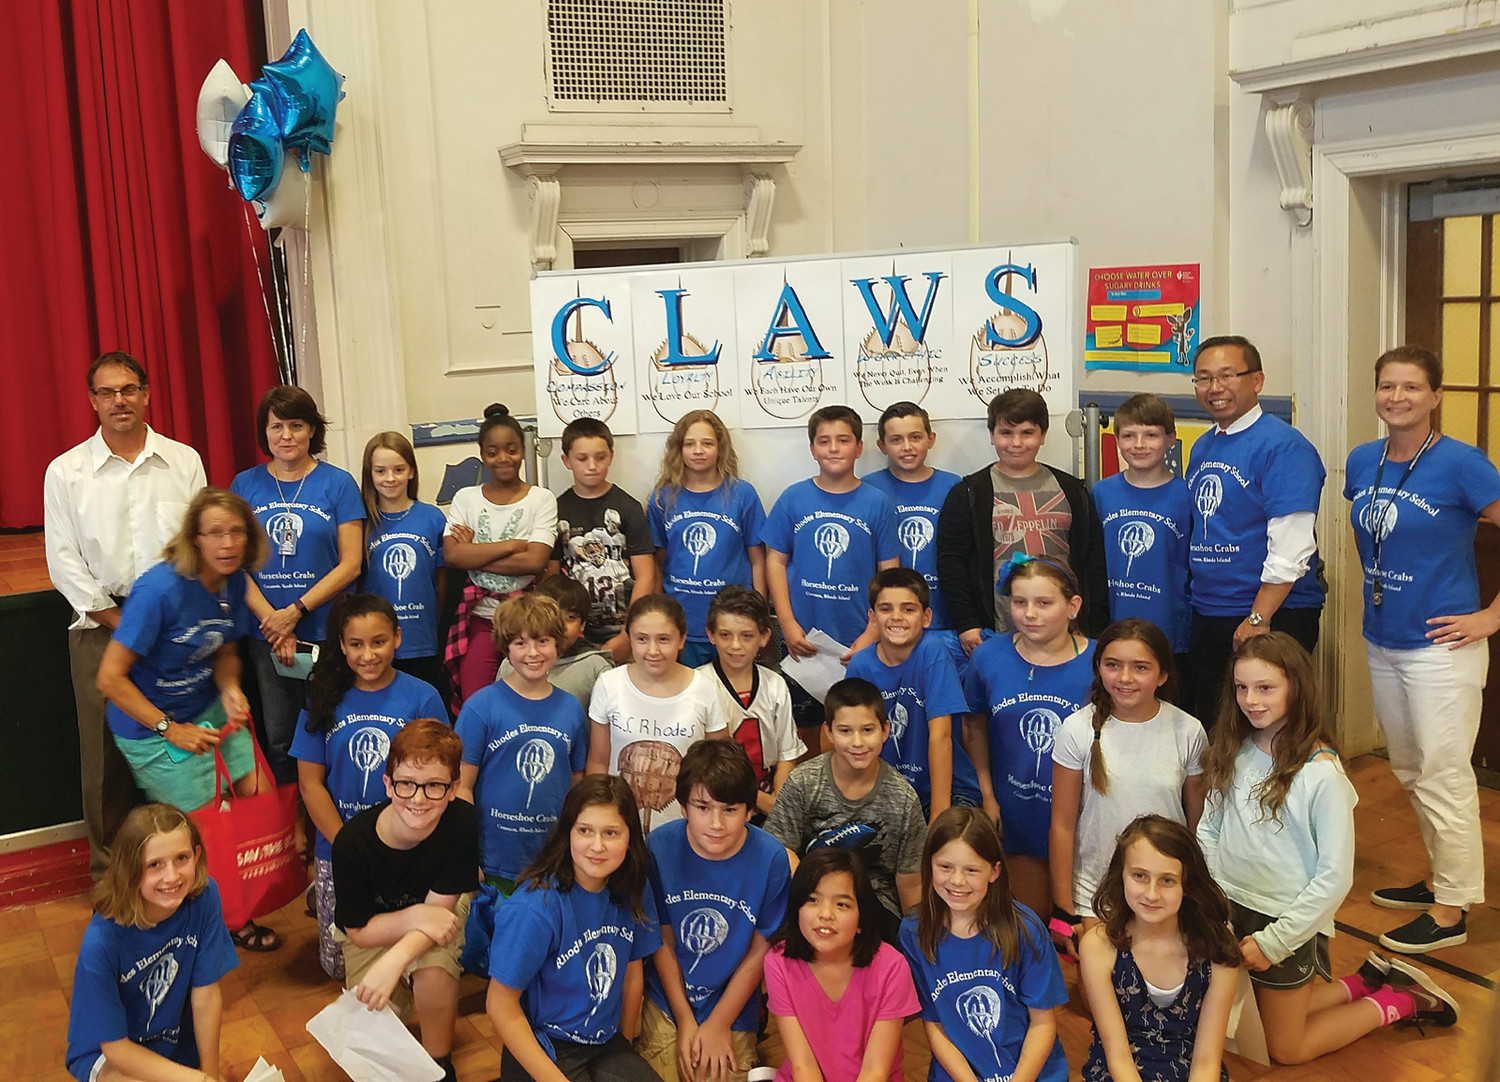 WE HAVE 'CLAWS': A new motto was unveiled to go along with the new mascot, an acronym with each letter of the motto signifying something important, such as loyalty and work ethic.